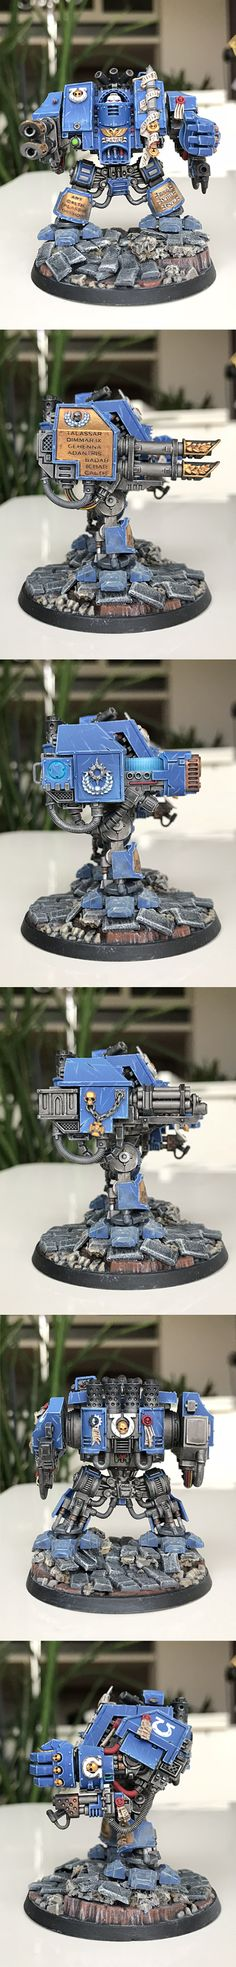 Venerable Dreadnought of the Ultramarines